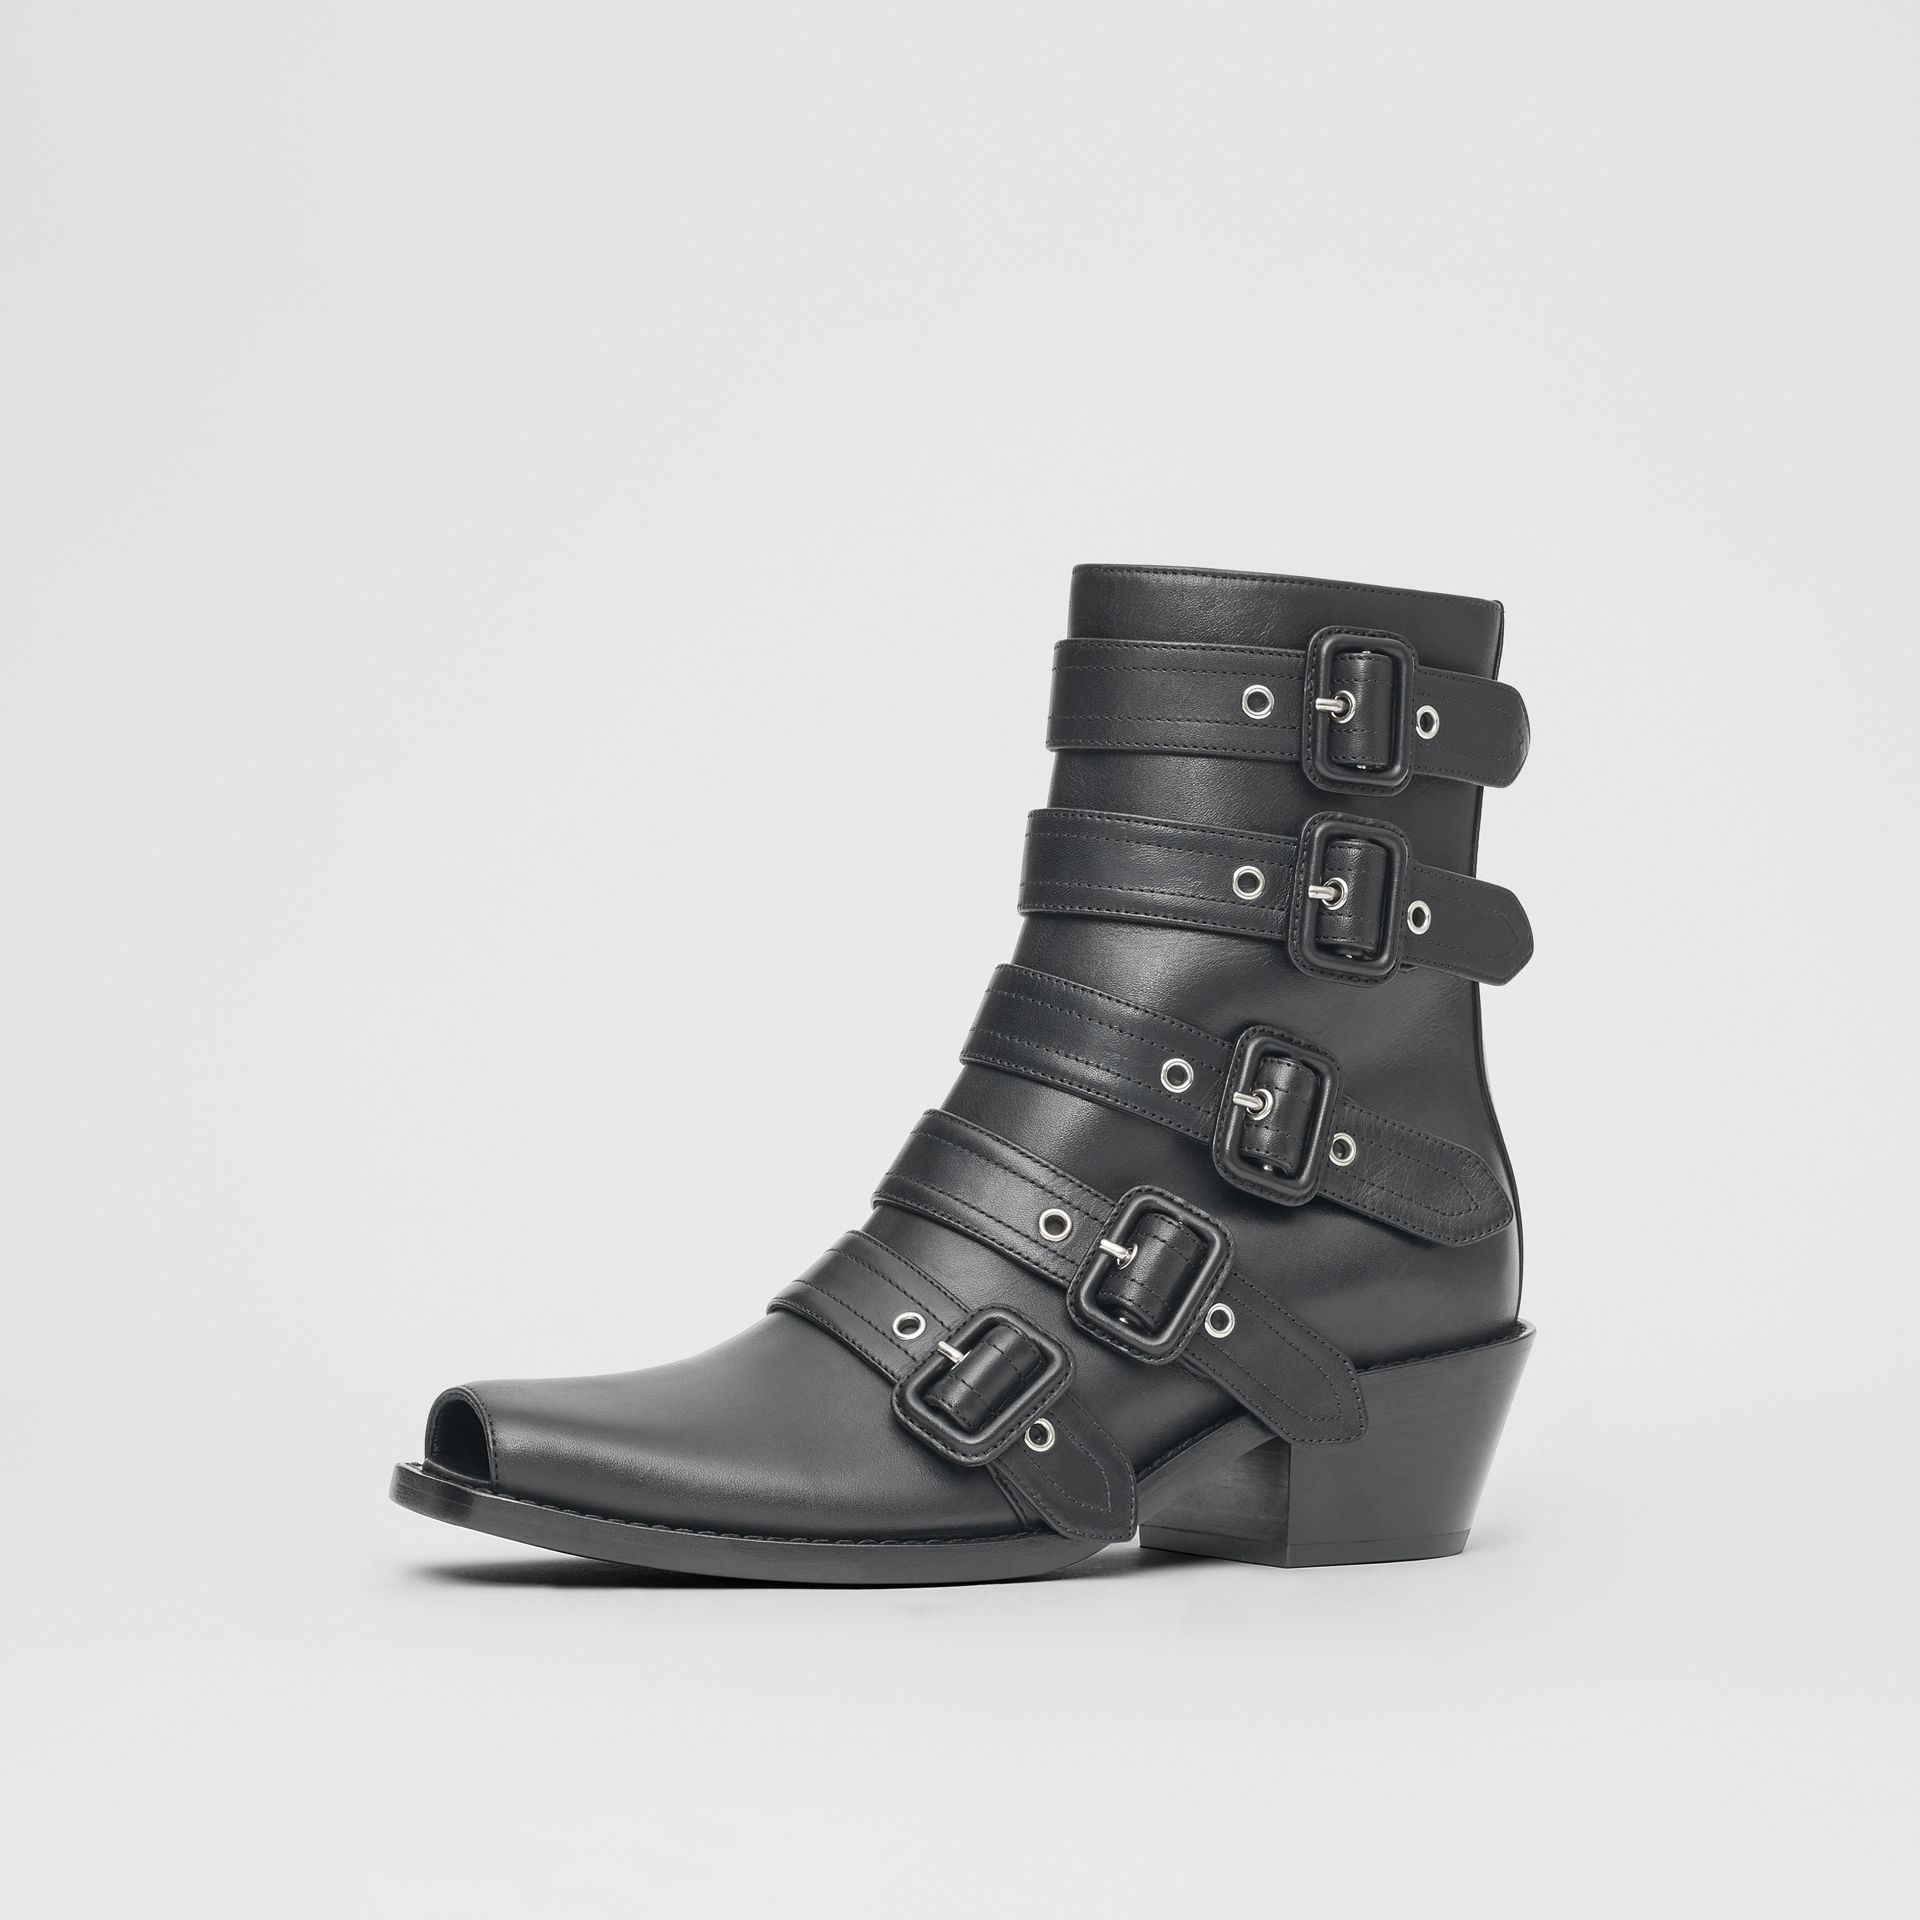 Buckled Leather Peep-toe Ankle Boots in Black - Women | Burberry - gallery image 7